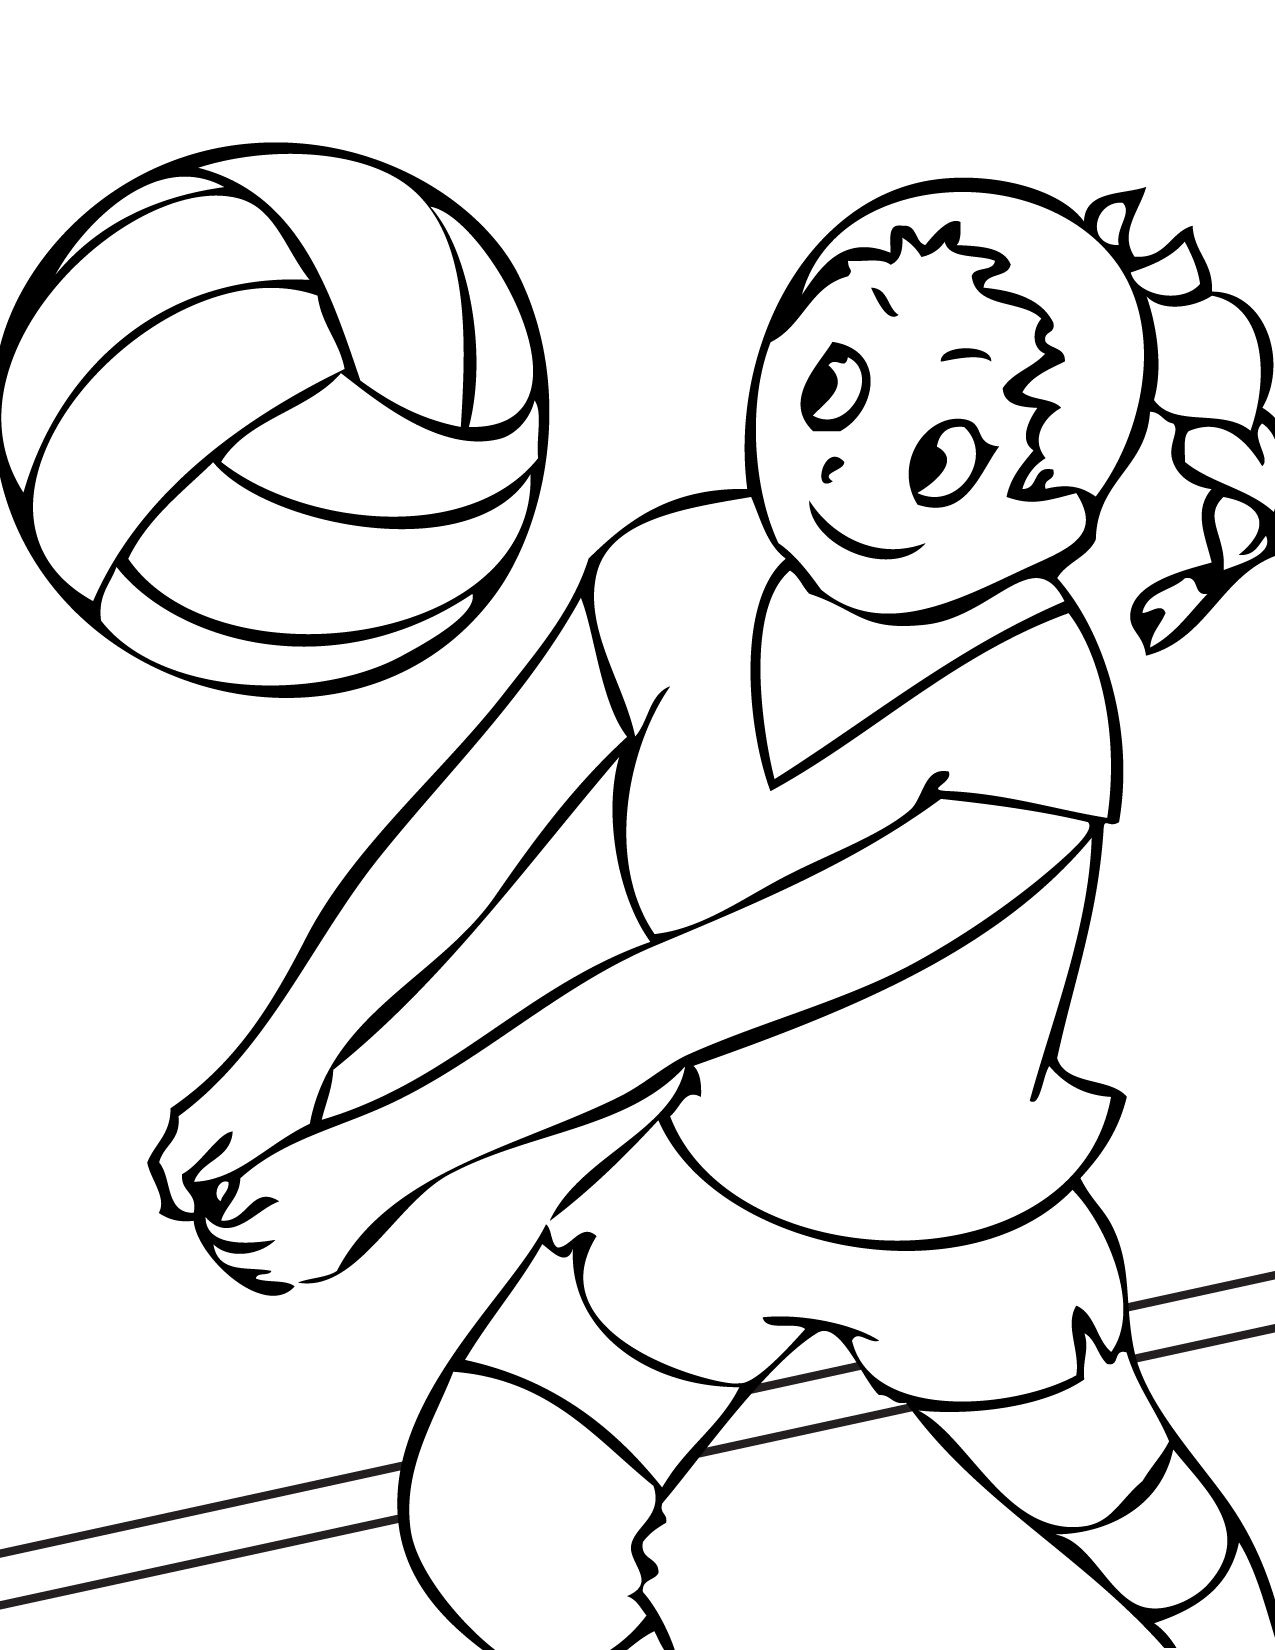 1275x1650 Coloring Pages For Kids Sports Free